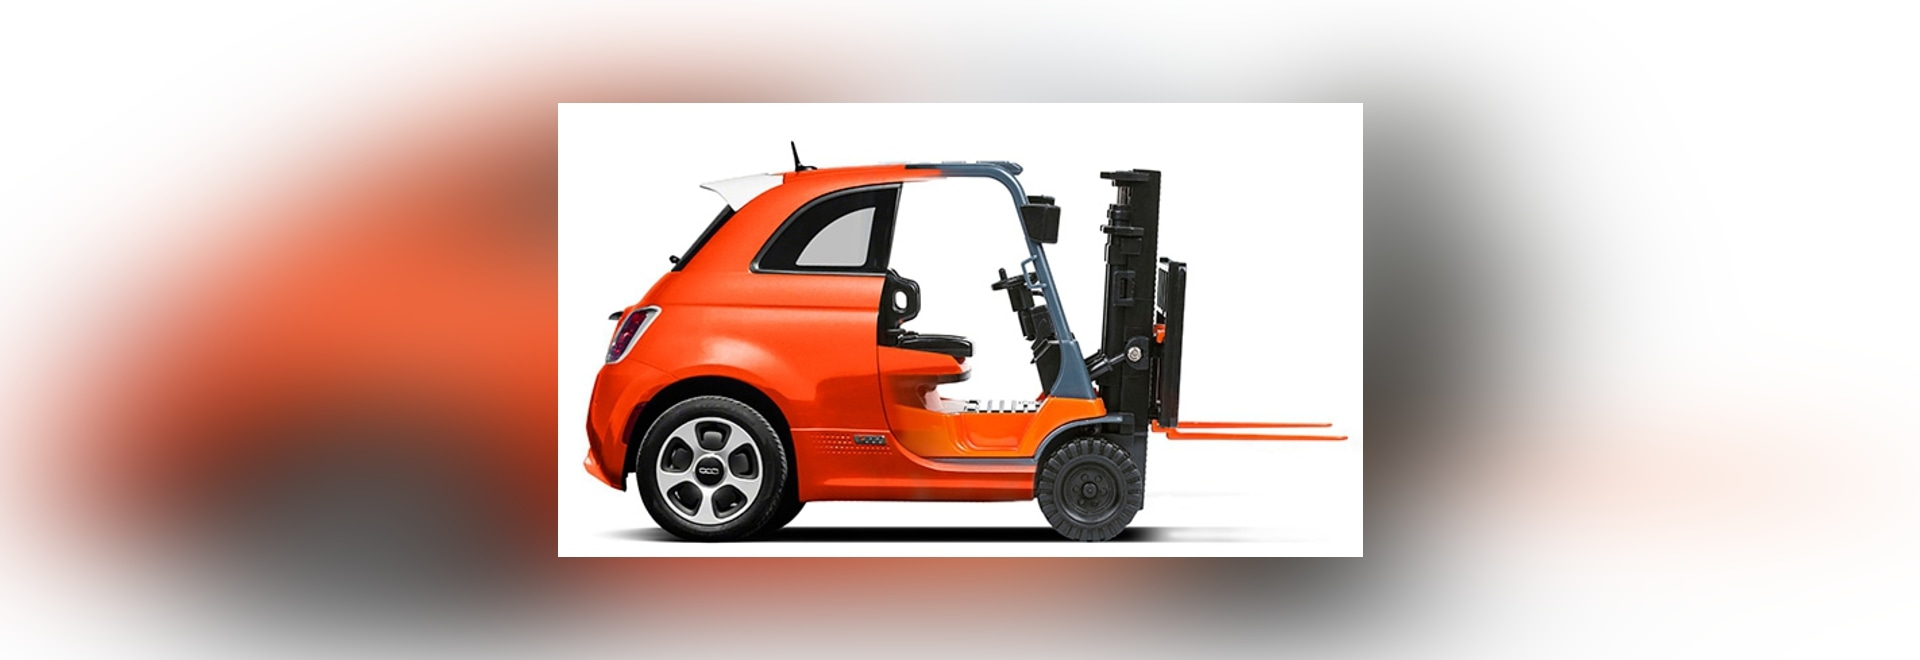 German Forklift Truck Firm Creates Financially Viable Fiat 500 Electric Car